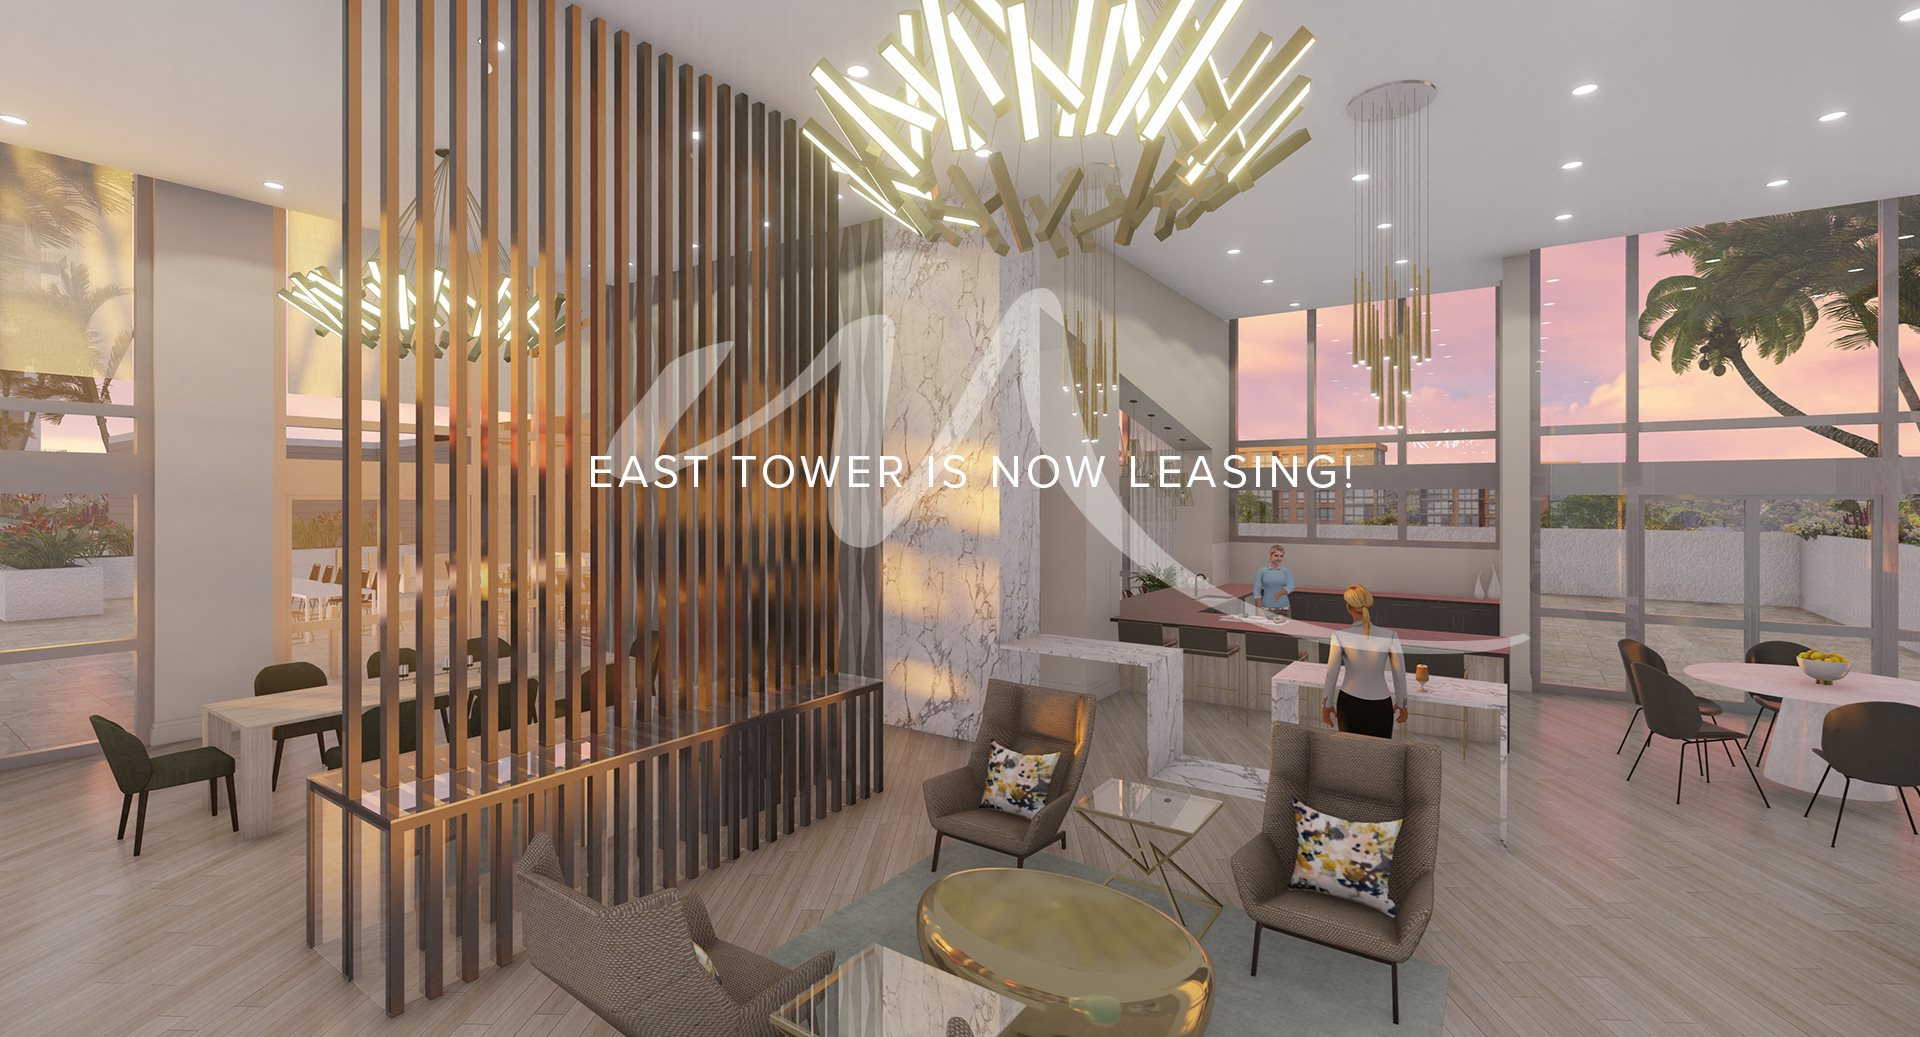 East tower homes are now leasing - rendering